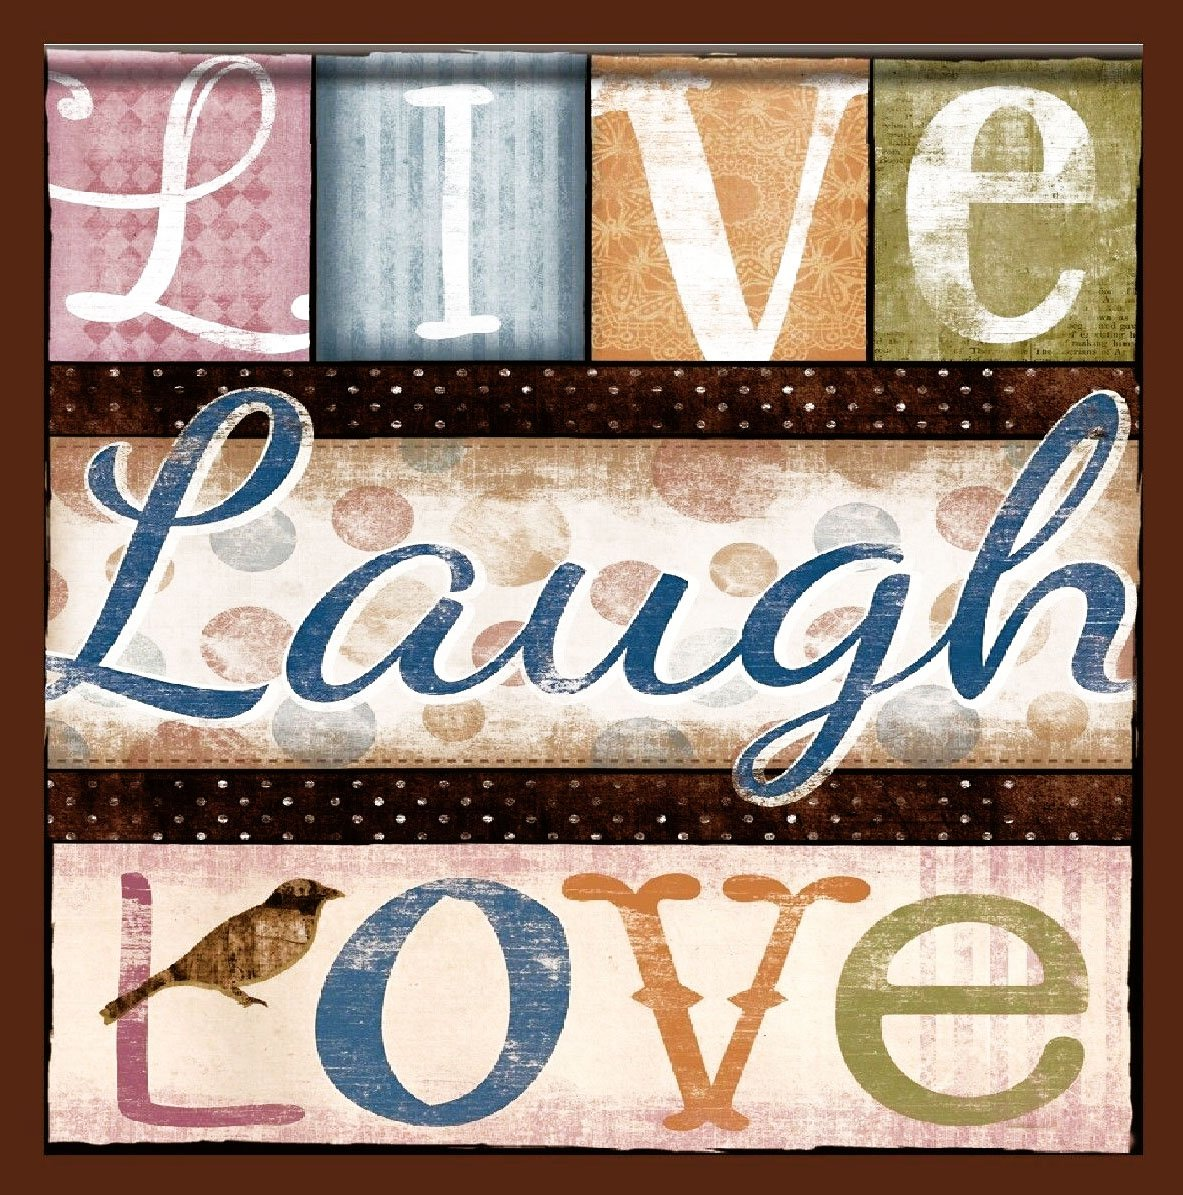 """Custom & Cool {3.5'' Inches} in Bulk Pack Set of 12 Square """"Grip Texture"""" Drink Cup Coasters Made of Flexible Poly Fabric w/ Rubber Bottom & Live Laugh Love Clipped Text [Colorful Tan Pink Orange Blue] by mySimple Products (Image #1)"""